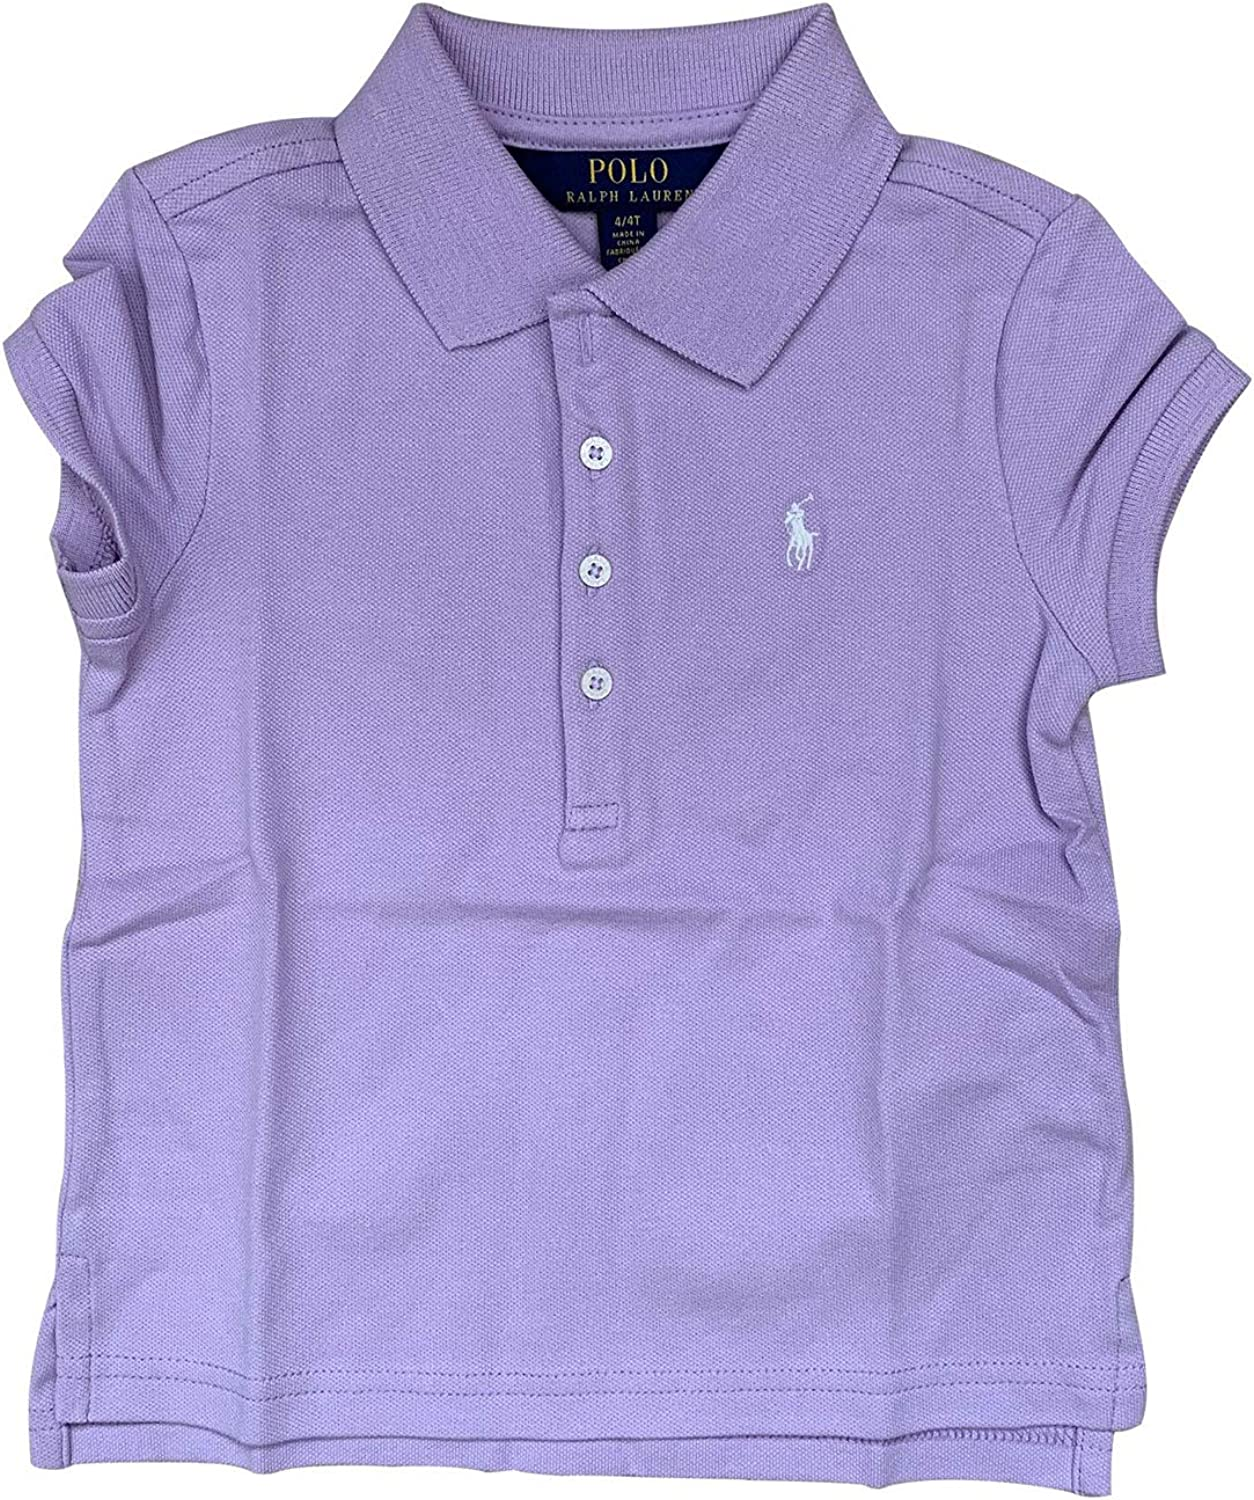 bassket.com Licensed Baby/Toddler Girls Cotton Polo Shirt 2019